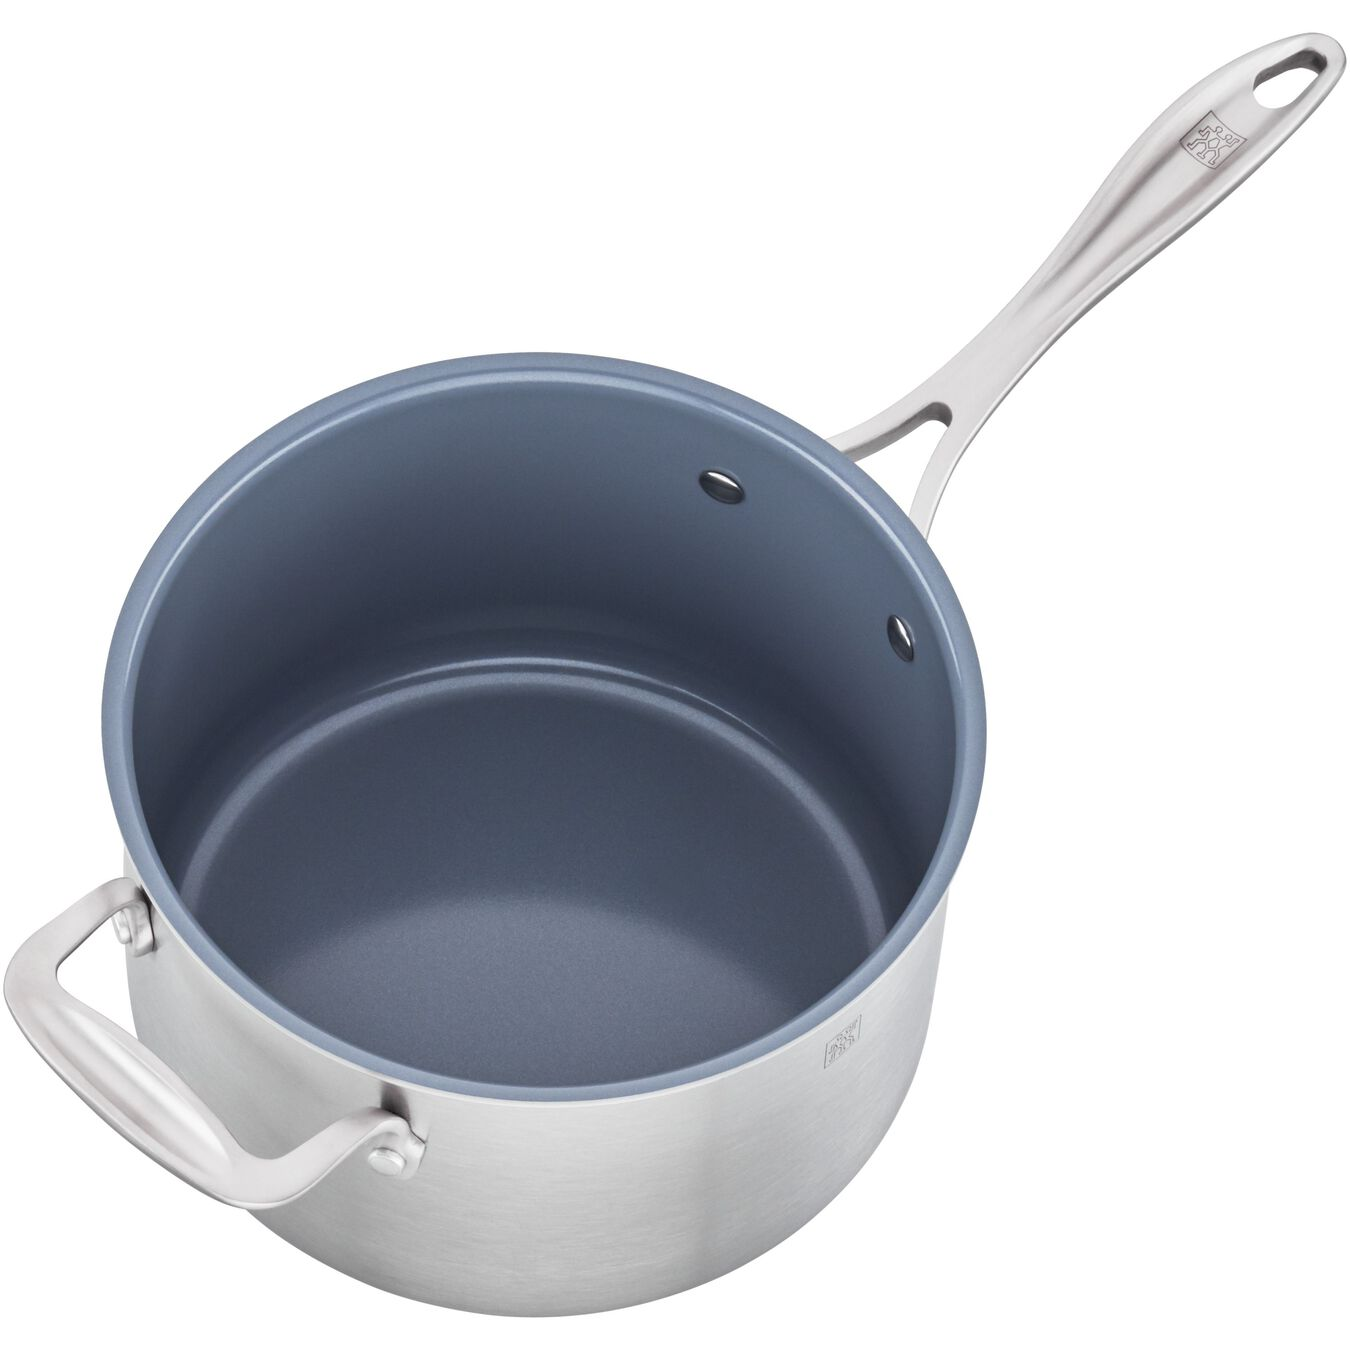 3-ply 4-qt Stainless Steel Ceramic Nonstick Saucepan,,large 4